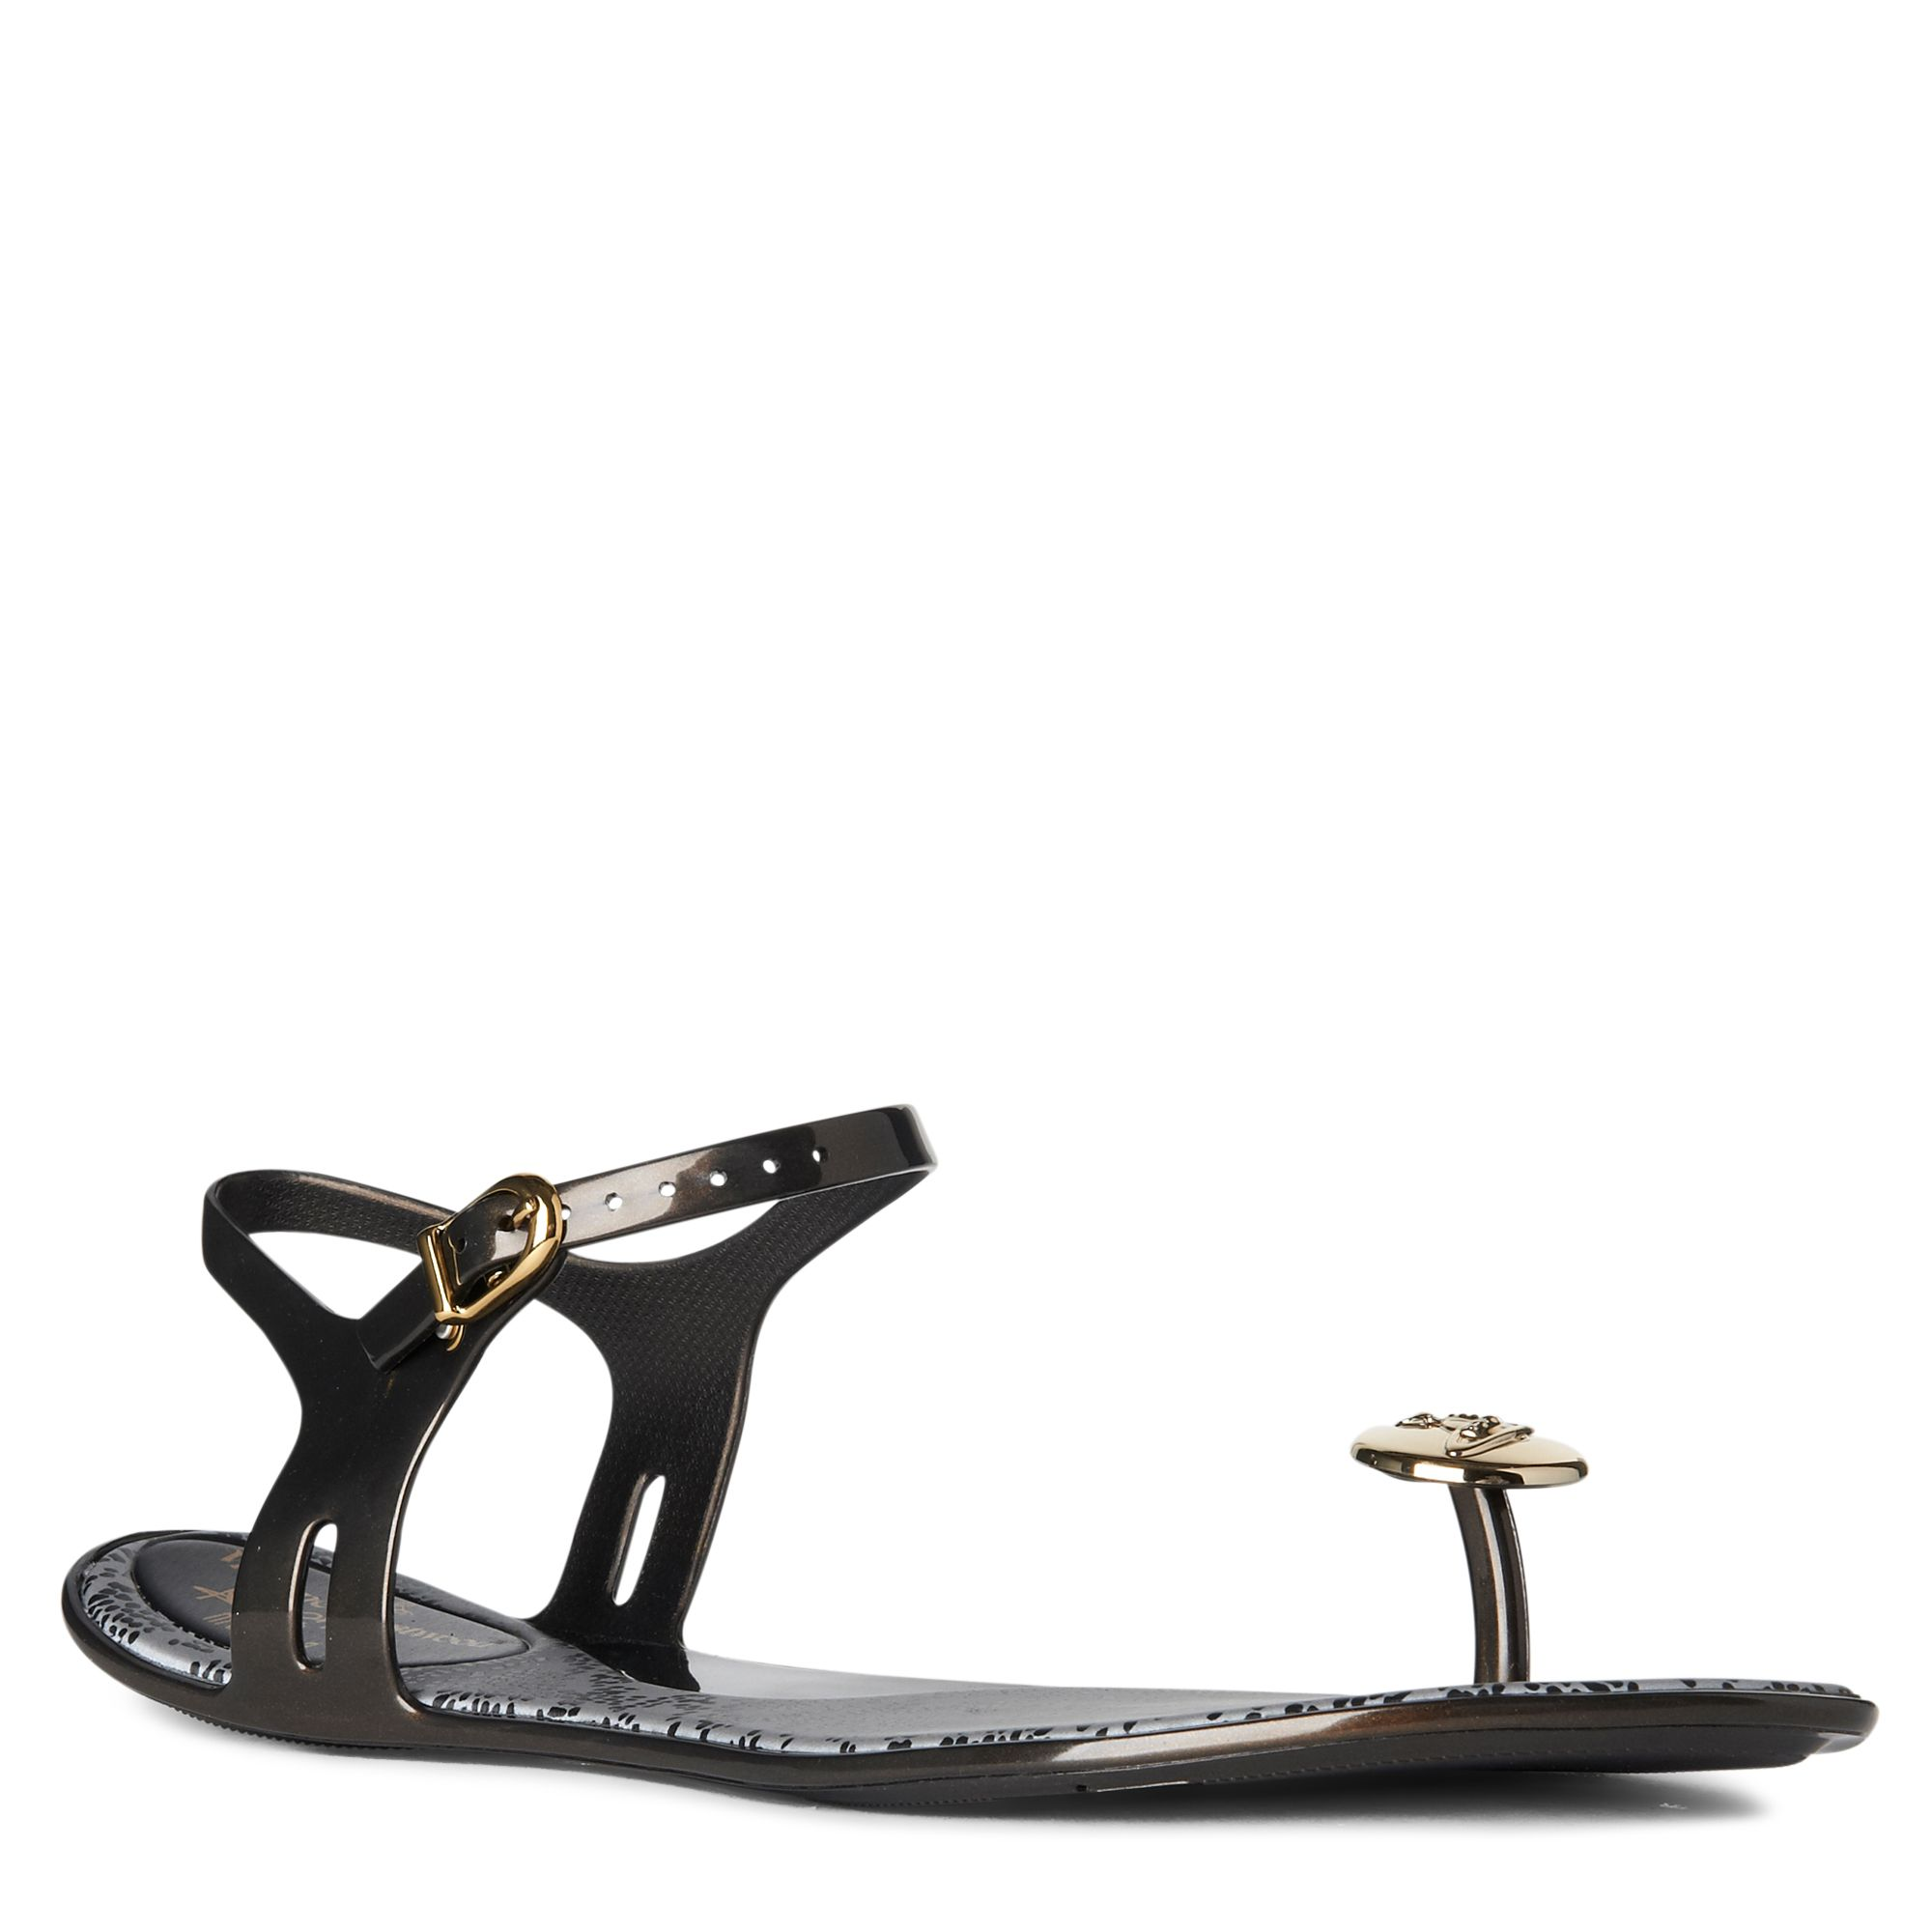 2ac7b512cf5845 Melissa + Vivienne Westwood Anglomania Button Toepost Sandals in ...